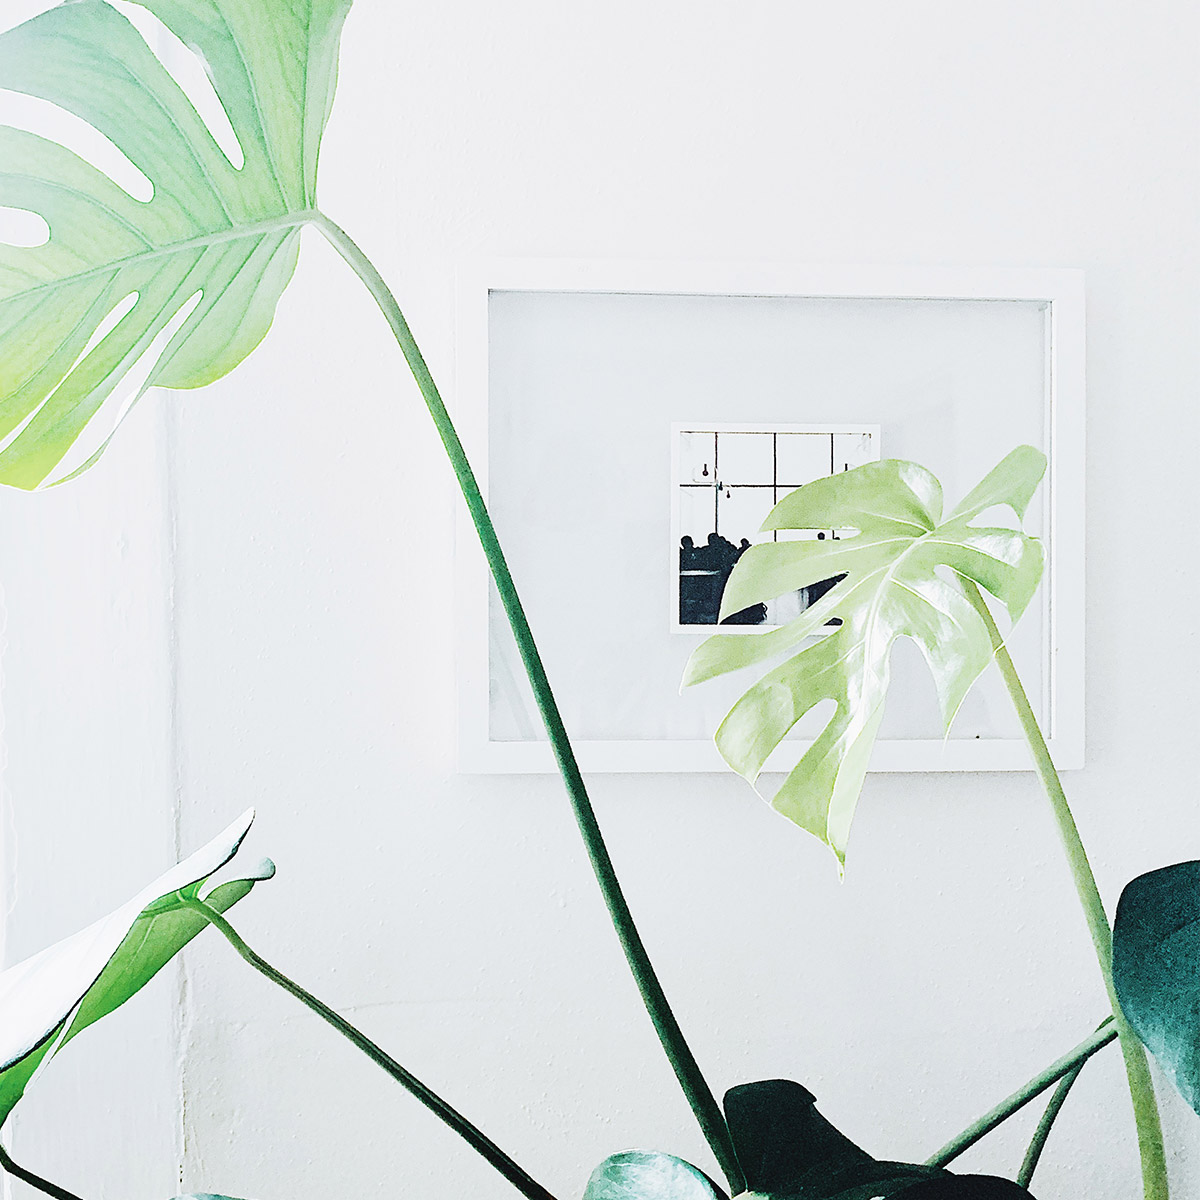 Framed Artifact Uprising Everyday Print hanging on wall and obscured by Monstera plant leaves